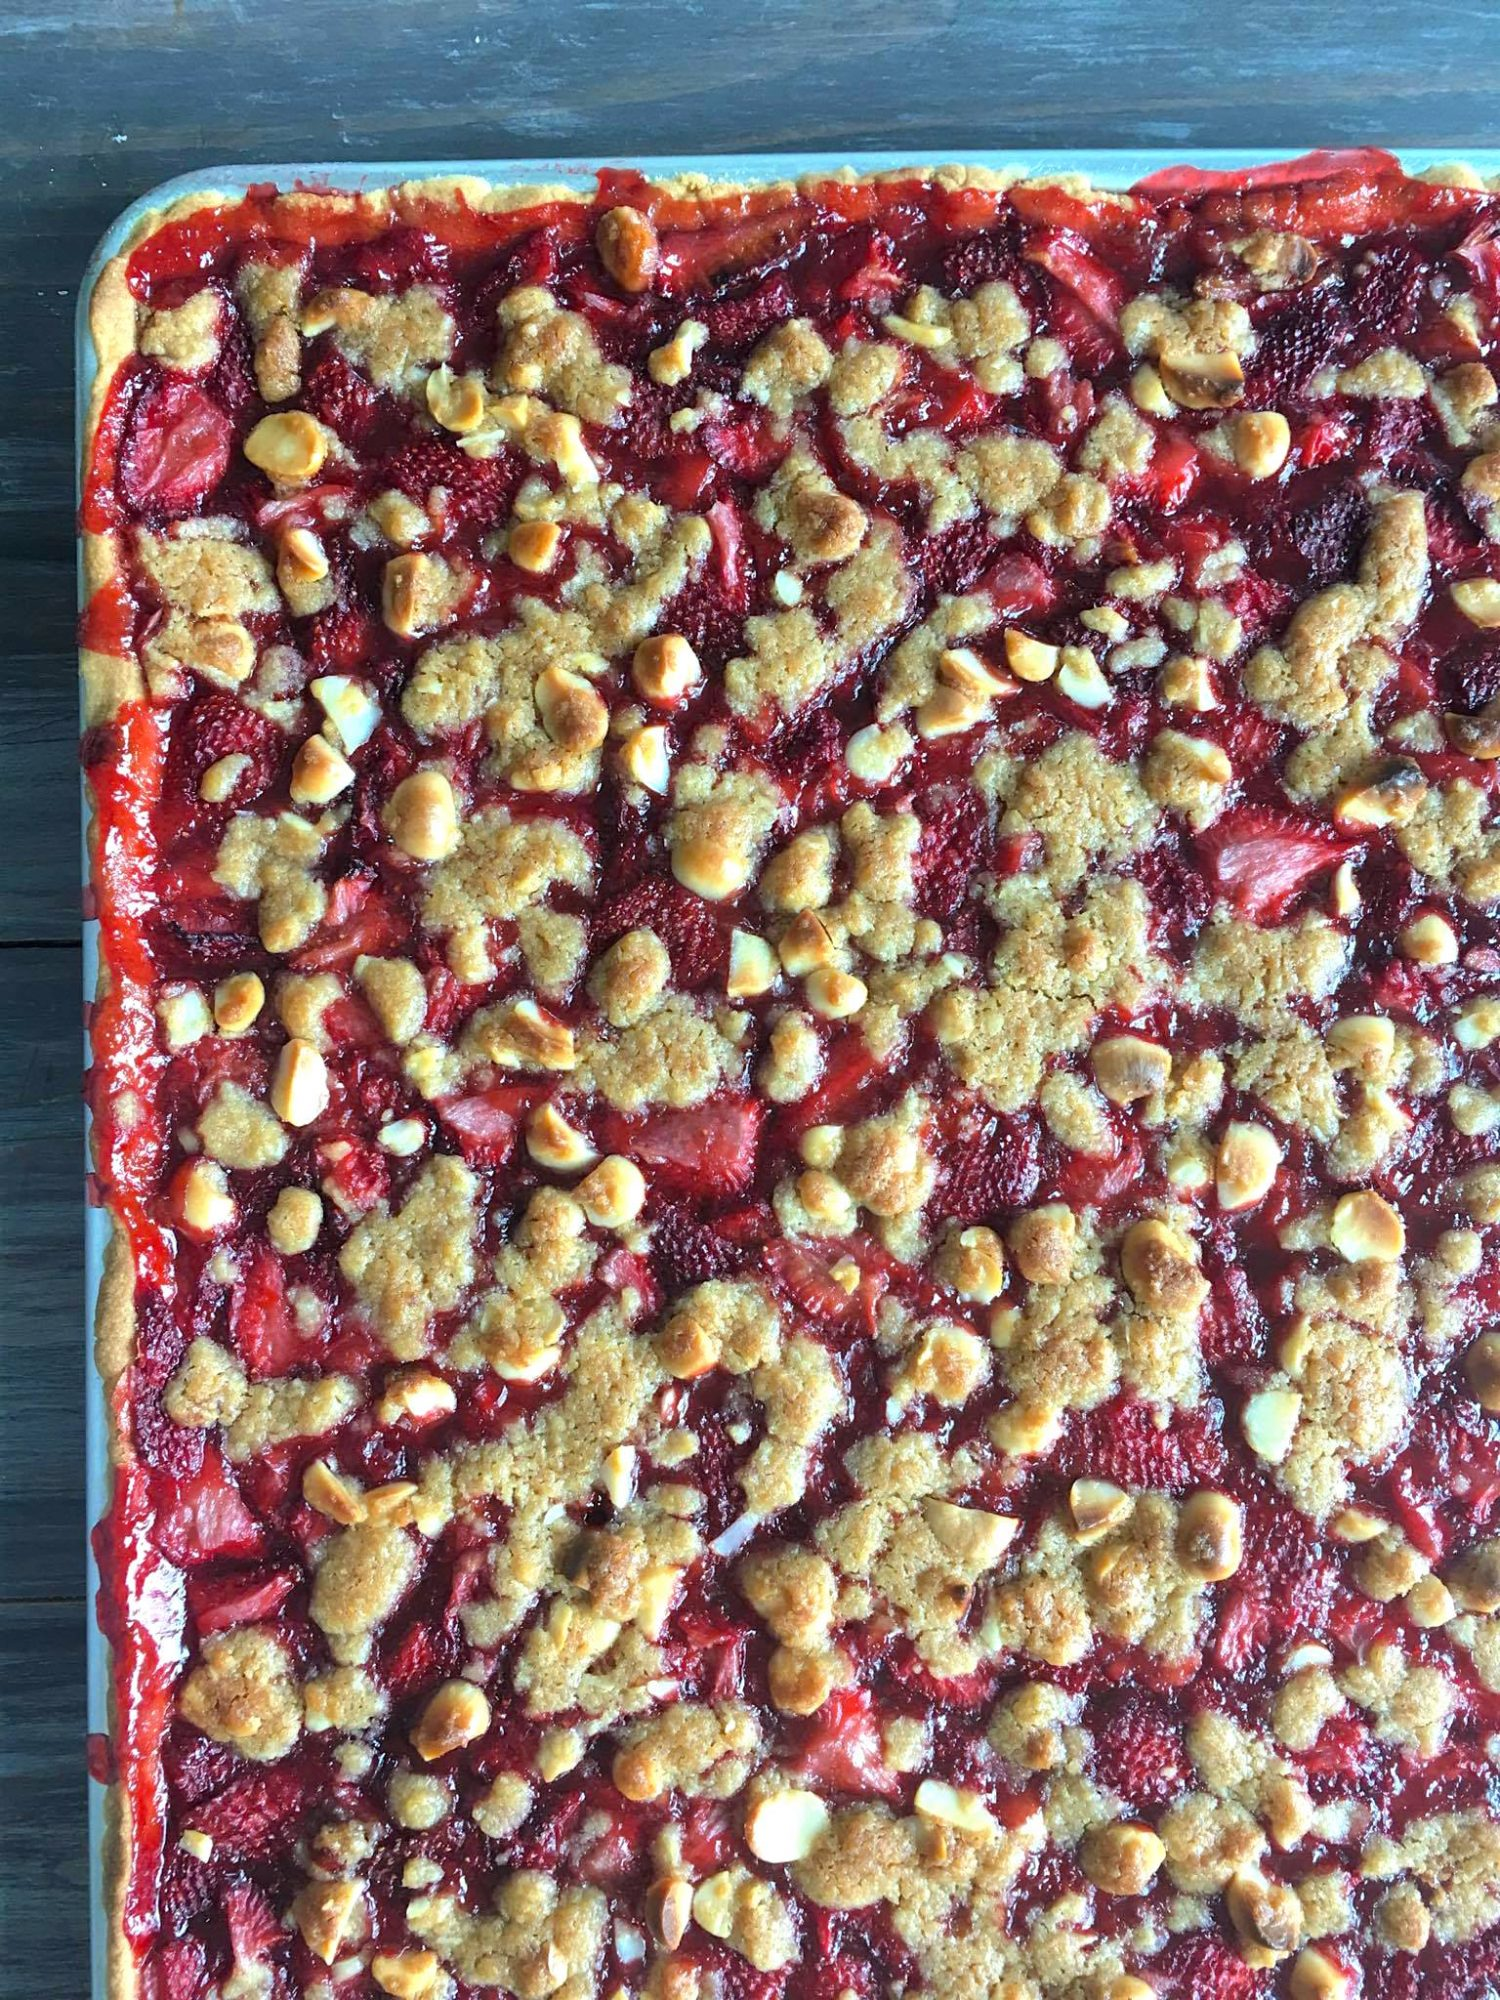 mr-strawberry-cardamom-slab-pie-image-0